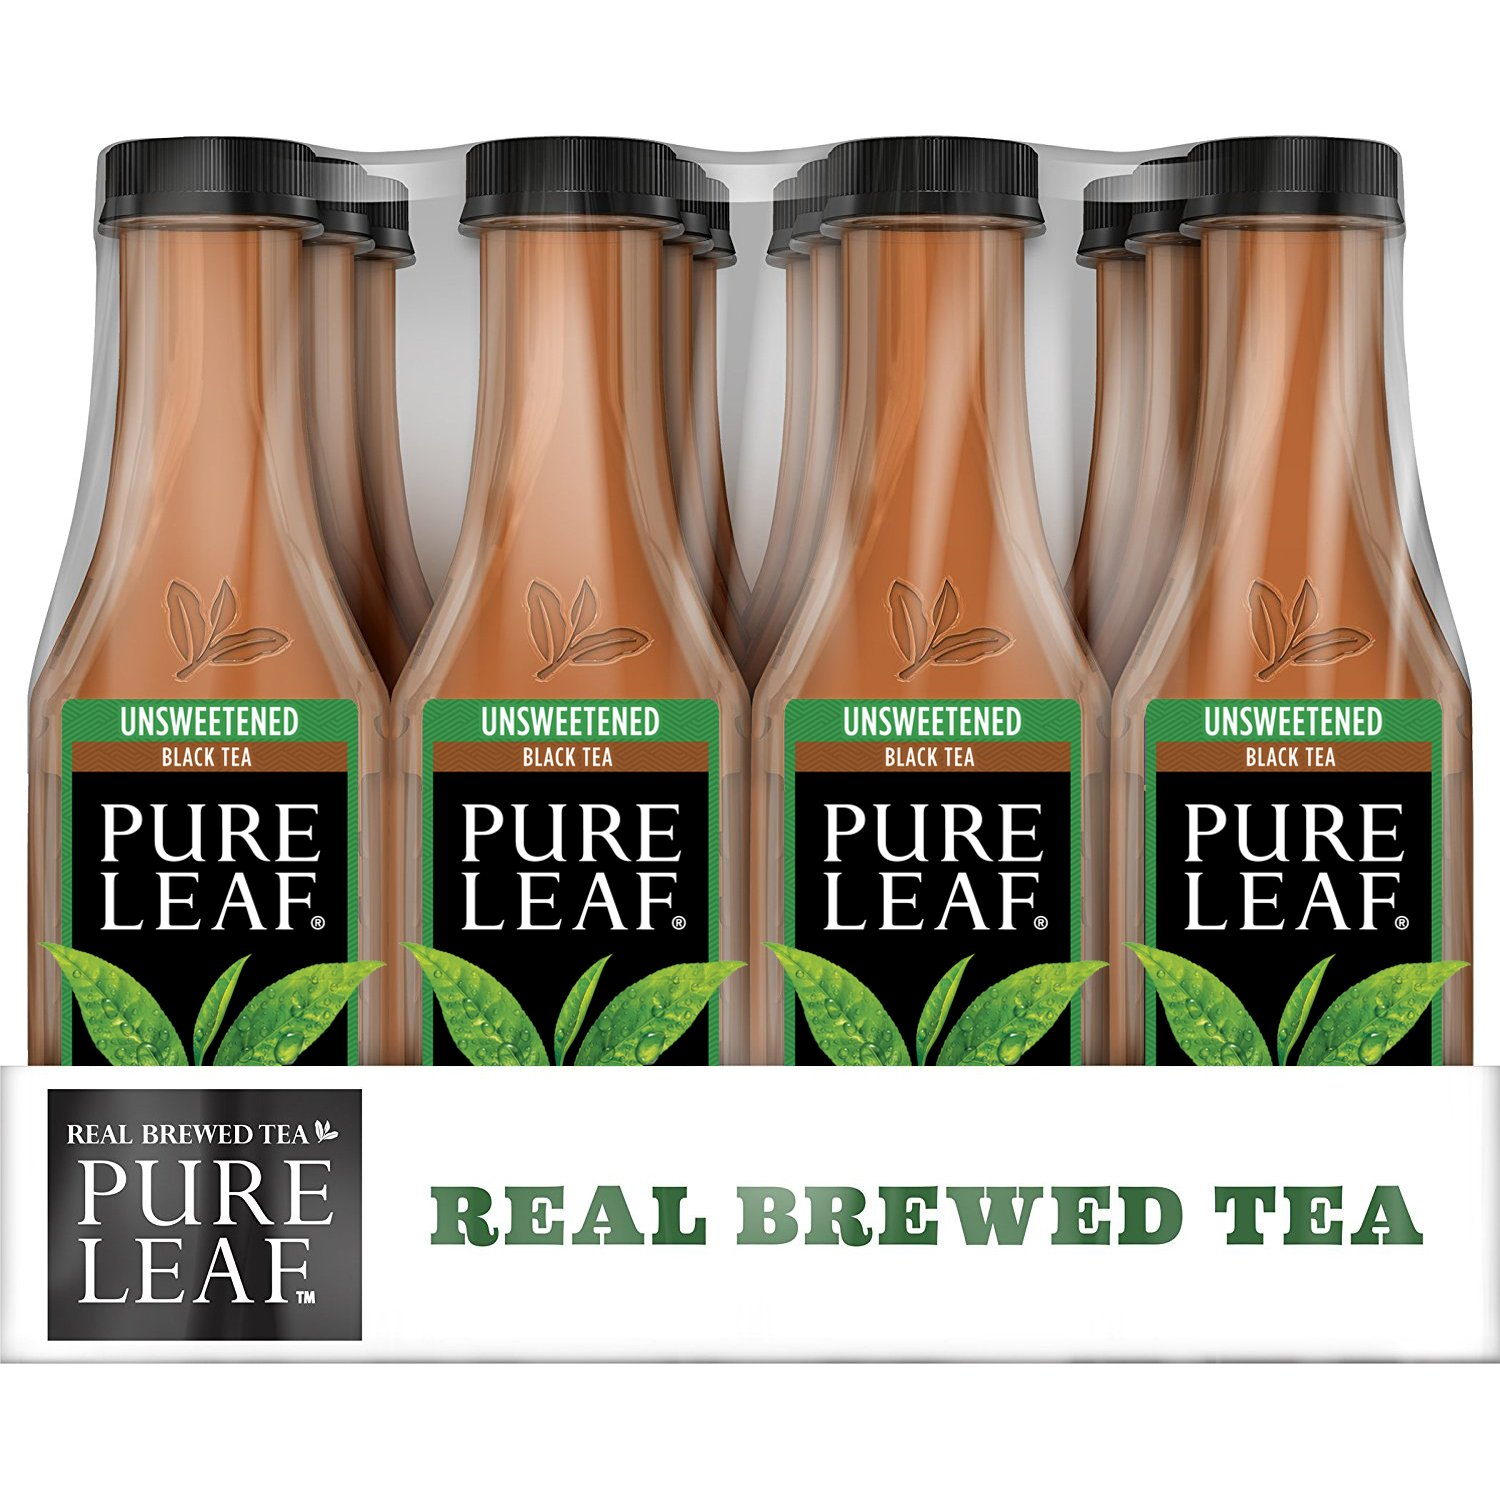 Pure Leaf Iced Tea, Unsweetened, Real Brewed Black Tea, 0 Calories, 18.5 Ounce (Pack of 12)